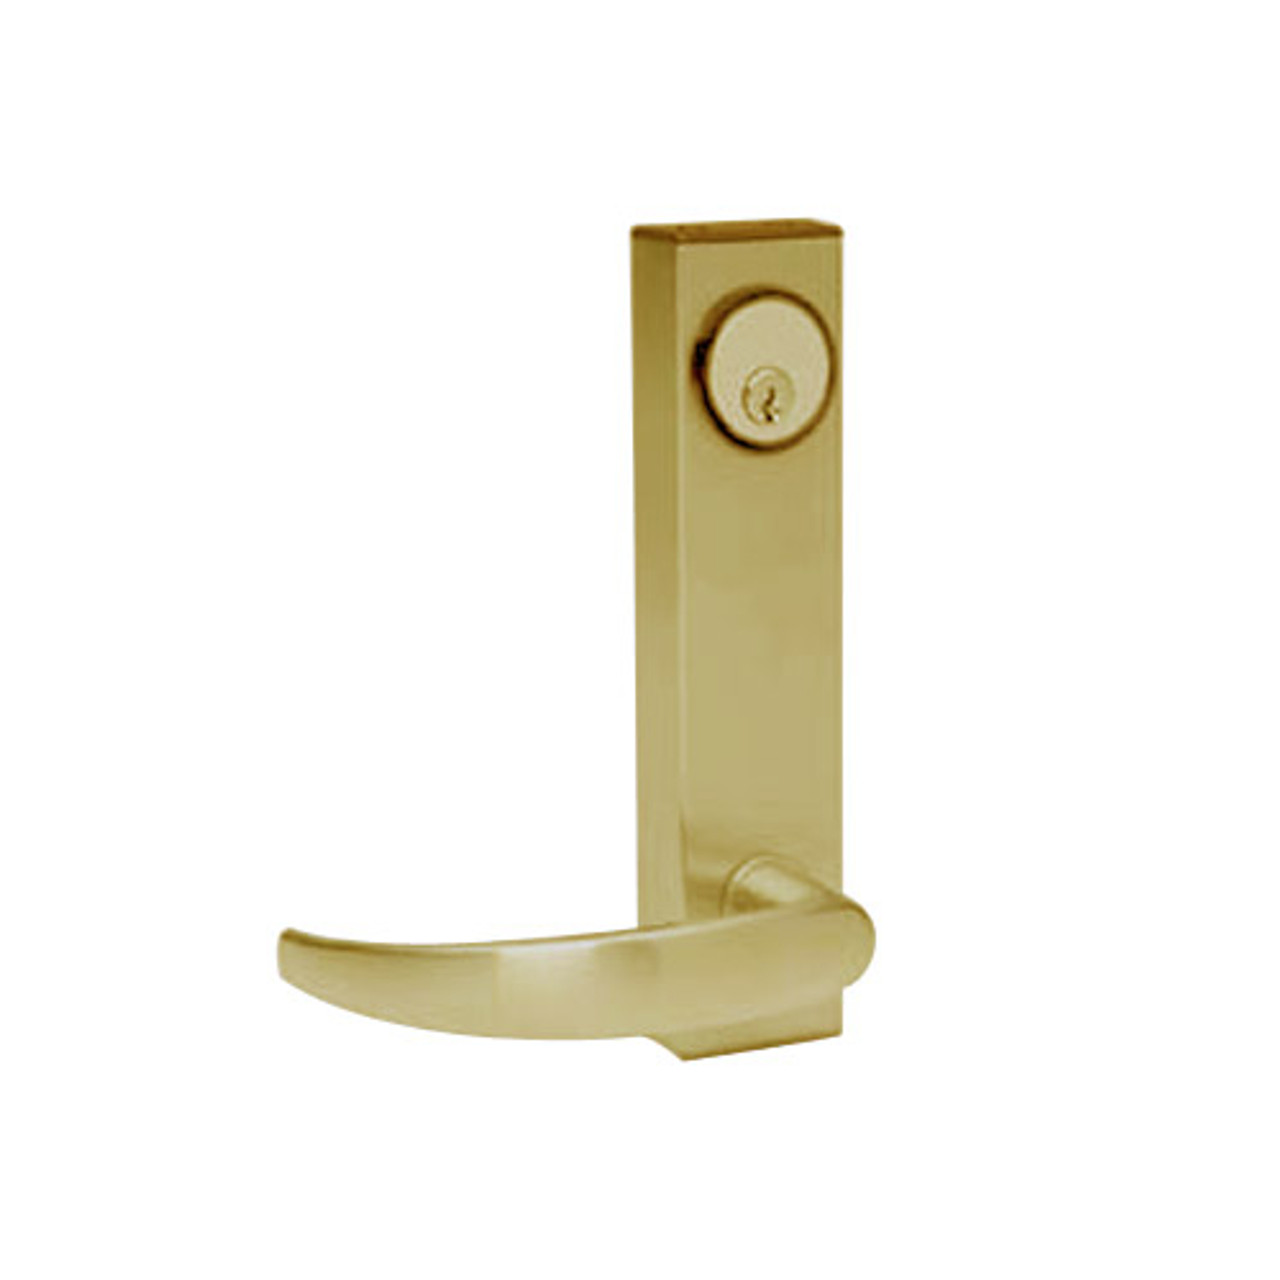 3080-01-0-94-US4 Adams Rite Standard Entry Trim with Curve Lever in Satin Brass Finish